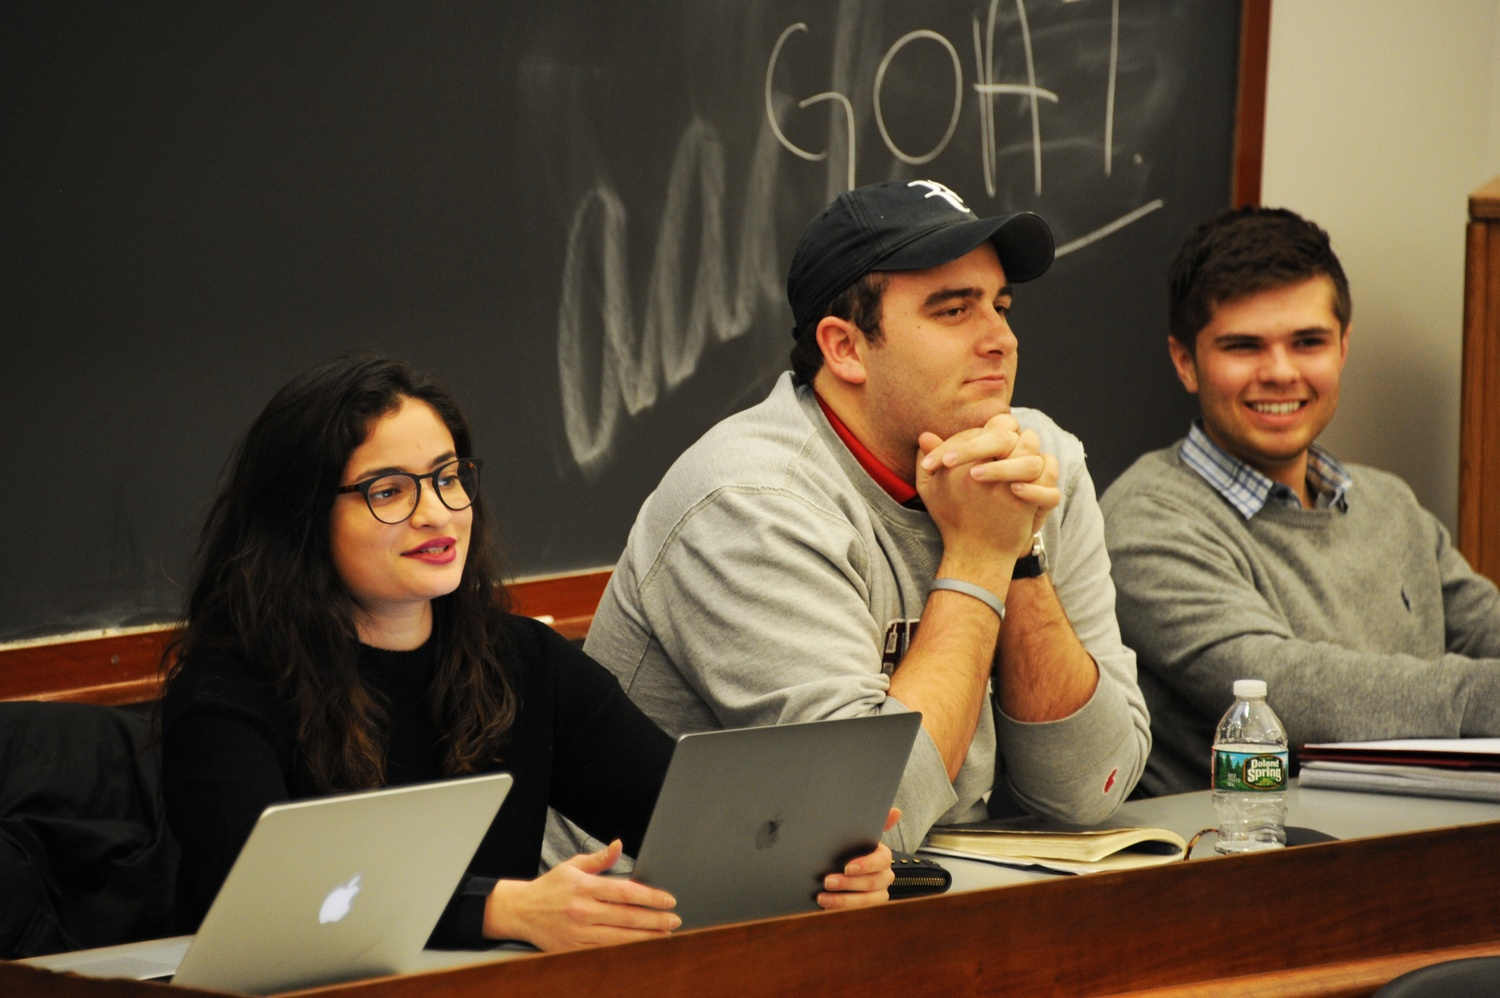 UC President Yasmin Z. Sachee '18 and Vice-President Cameron K. Khansarinia '18 talk at a Undergraduate Council meeting in Harvard Hall on Sunday.